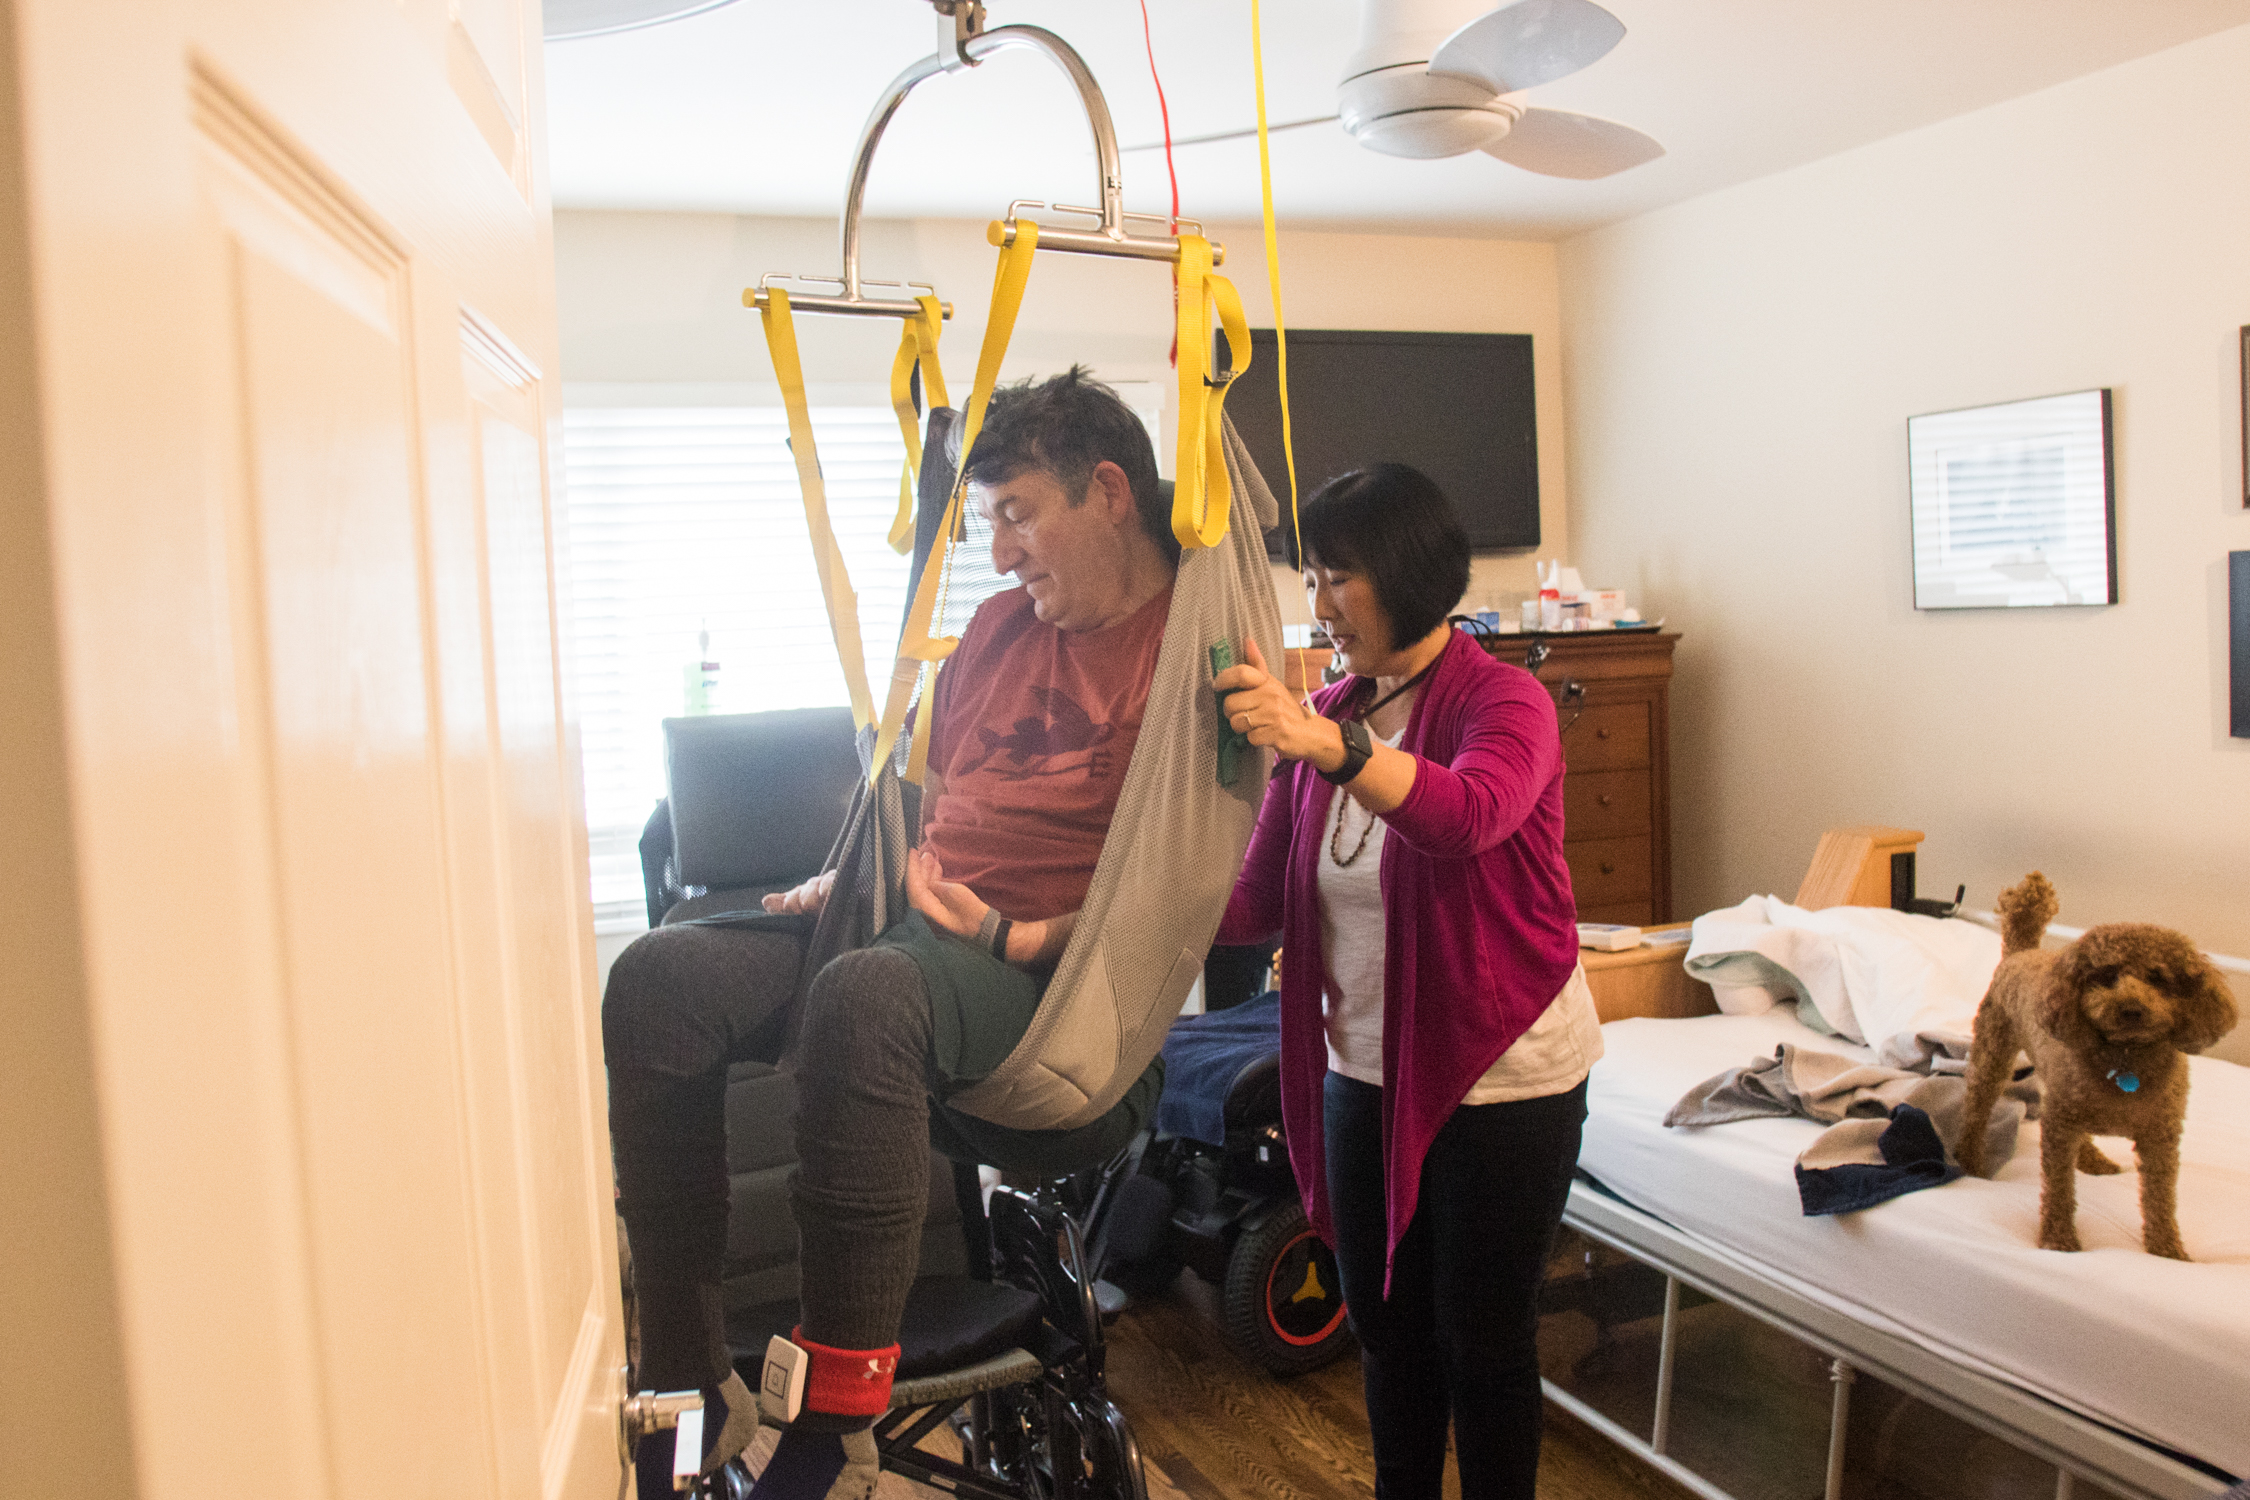 Karen Kang uses a mechanized lift to lower Jon Ferraiolo into his wheelchair as the couple gets ready to step outside for a walk on March 8. Kang says that the family had to completely remodel the lower unit of their house to accommodate Ferraiolo's equipment. They installed the lift, a moveable bed that rotates Ferraiolo throughout his sleep, a wheelchair-accessible bathroom and a lot of equipment.